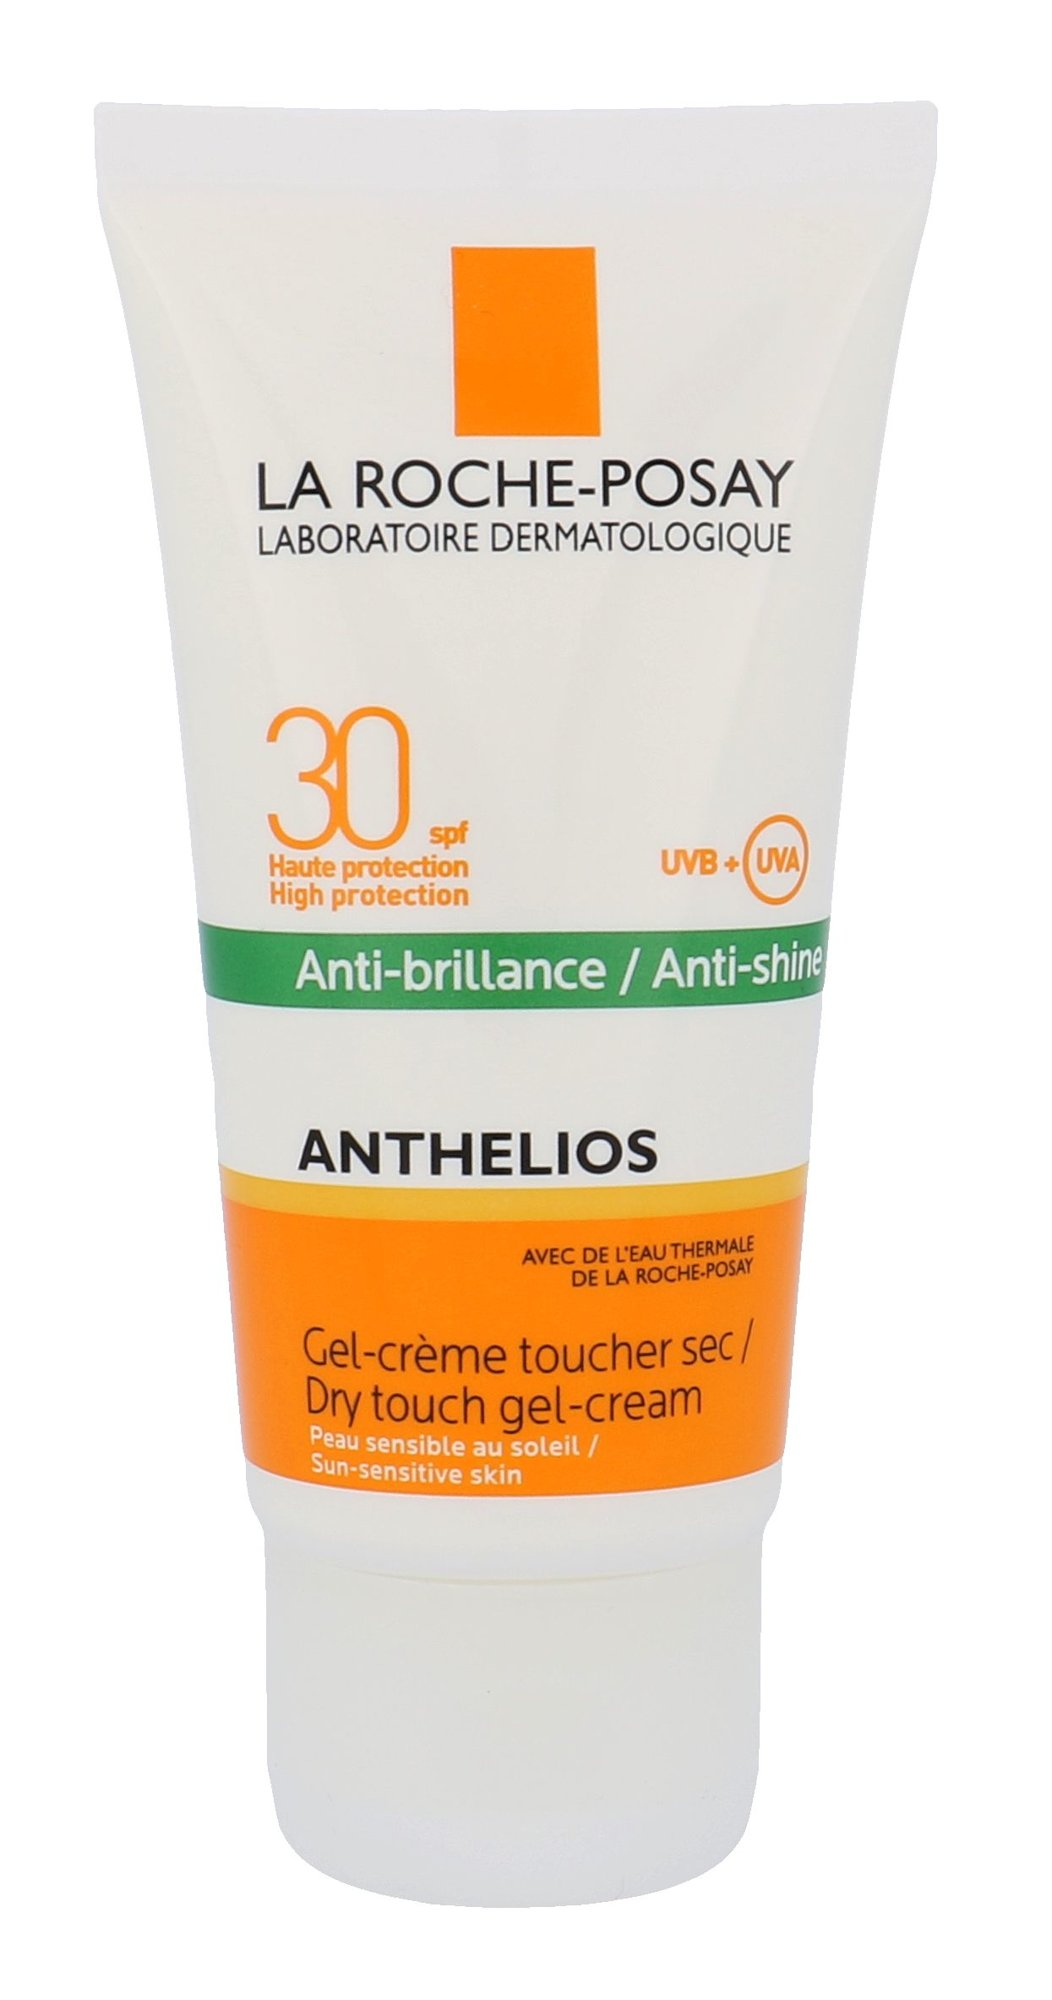 La Roche-Posay Anthelios Dry Touch Gel-Cream SPF30 Cosmetic 50ml